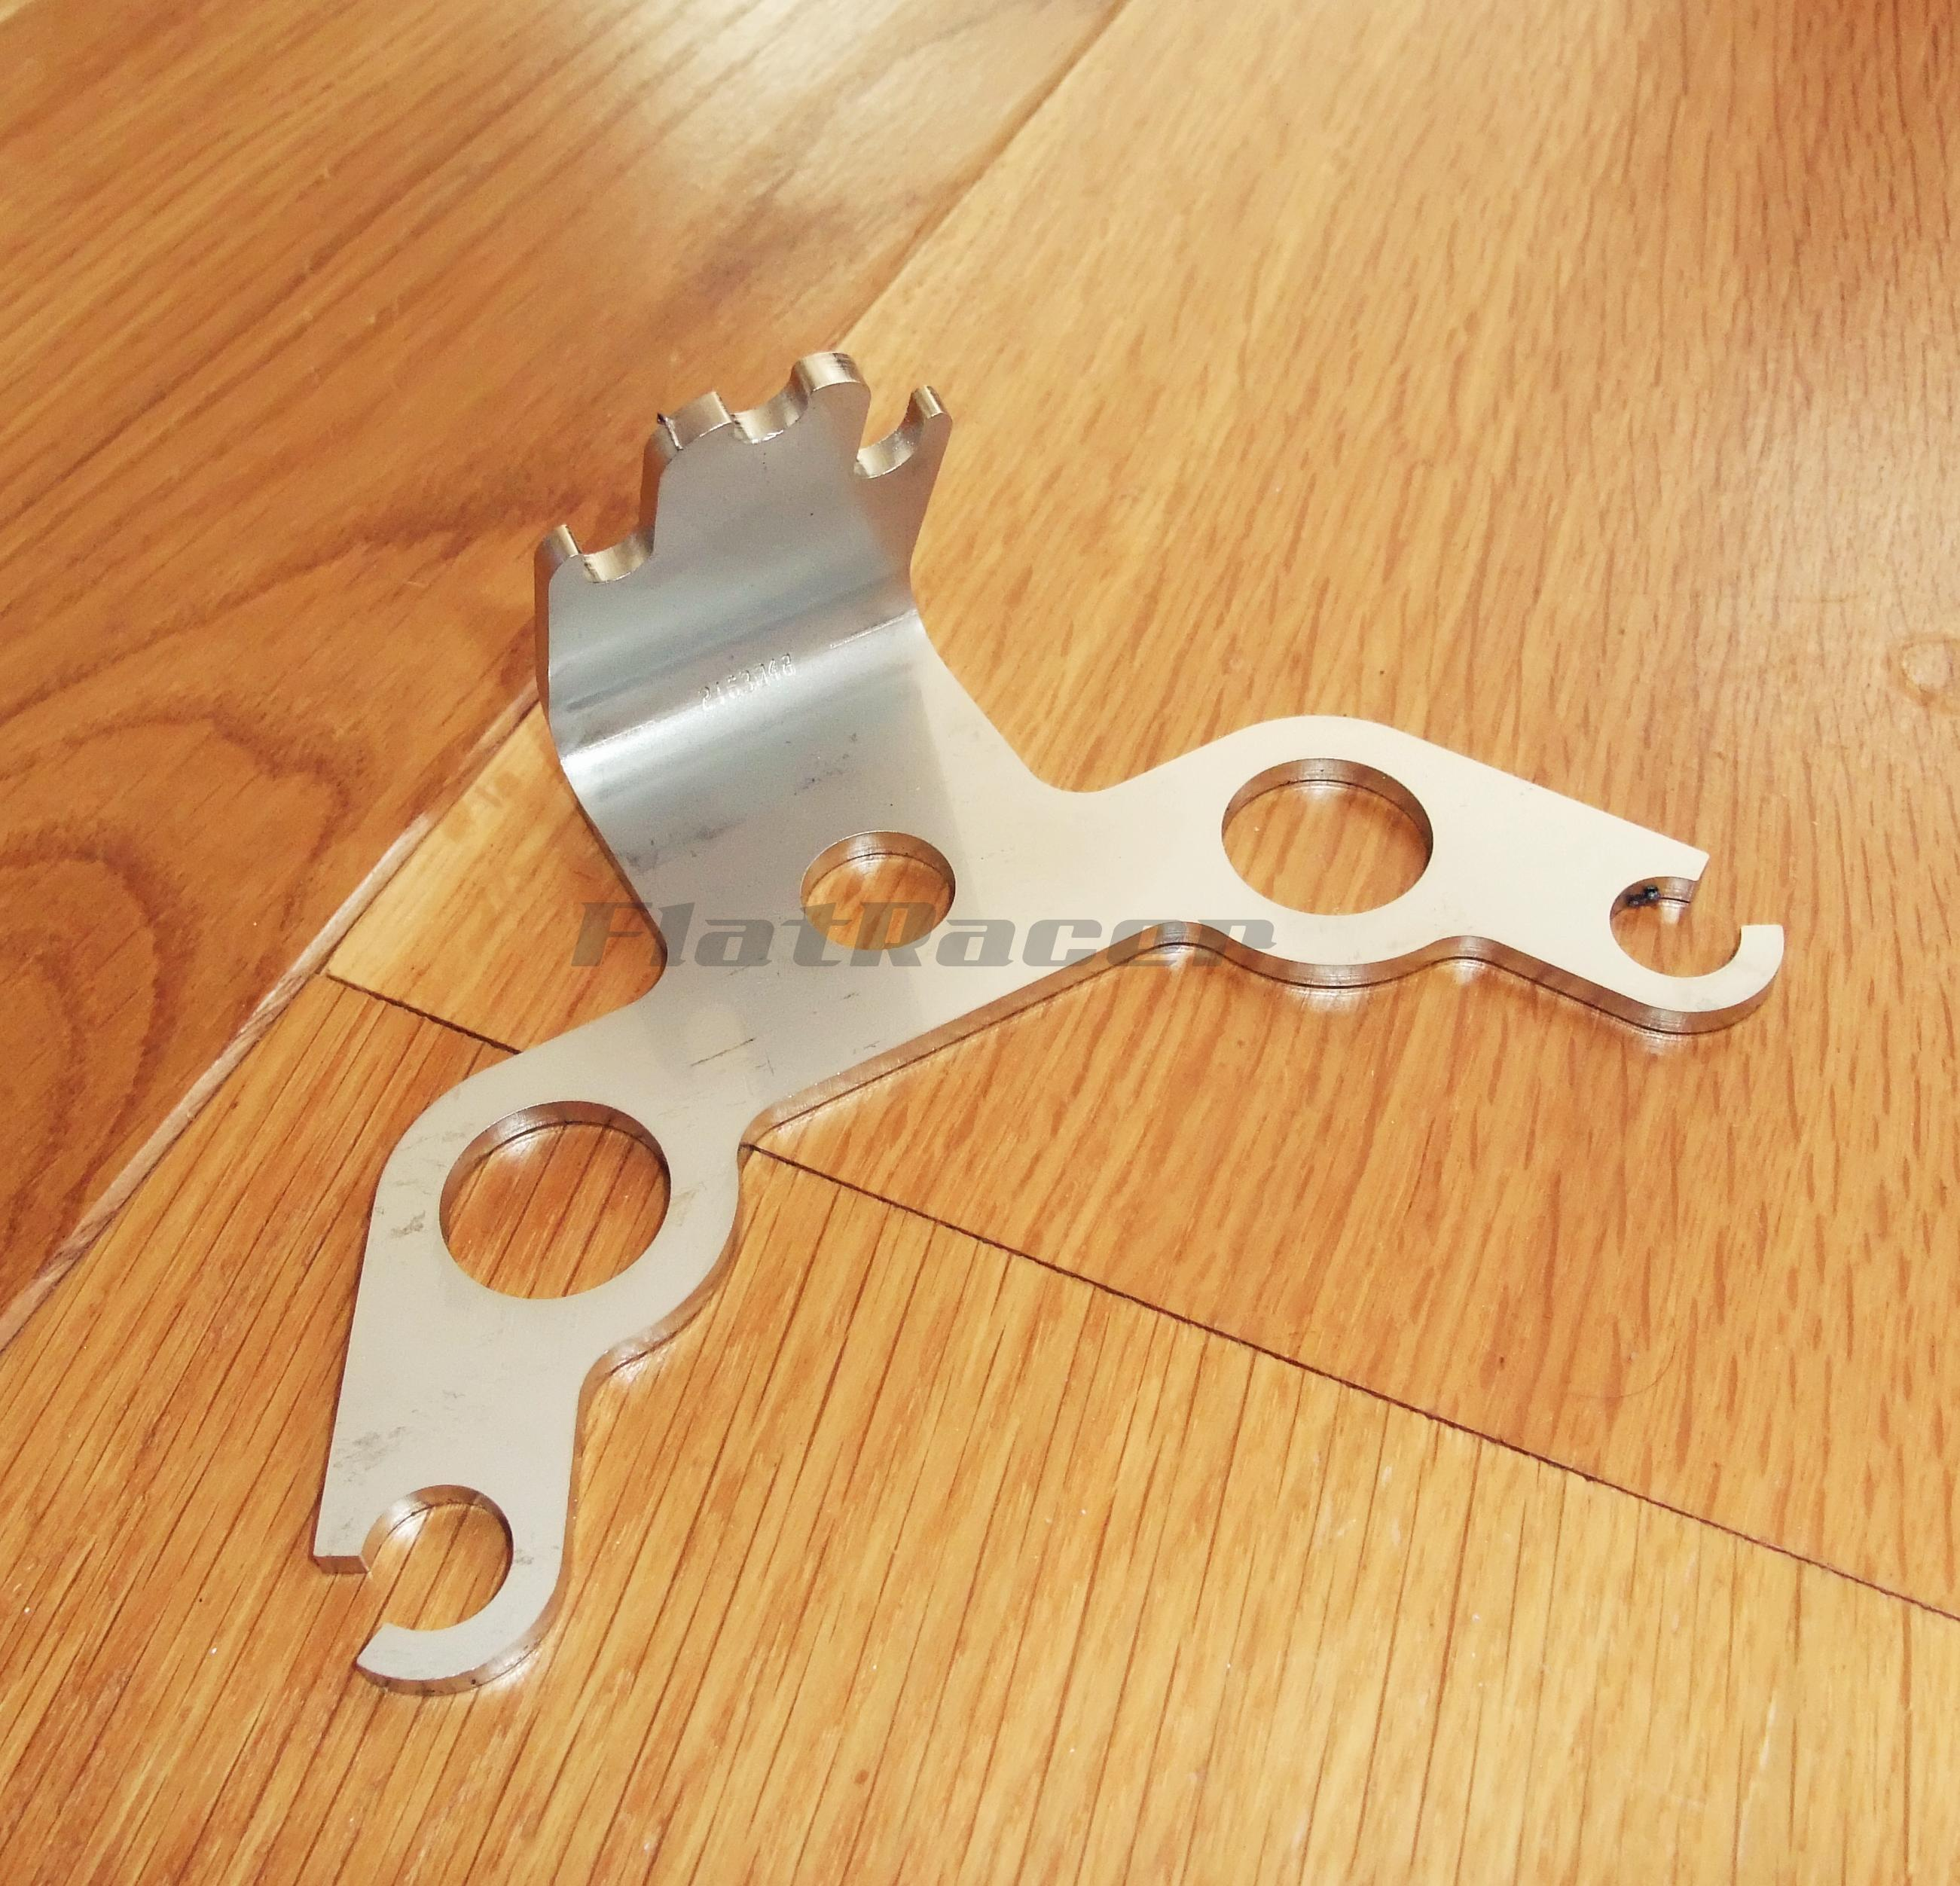 FlatRacer BMW Airhead Boxer stainless steel low instrument cluster bracket - 31421232240